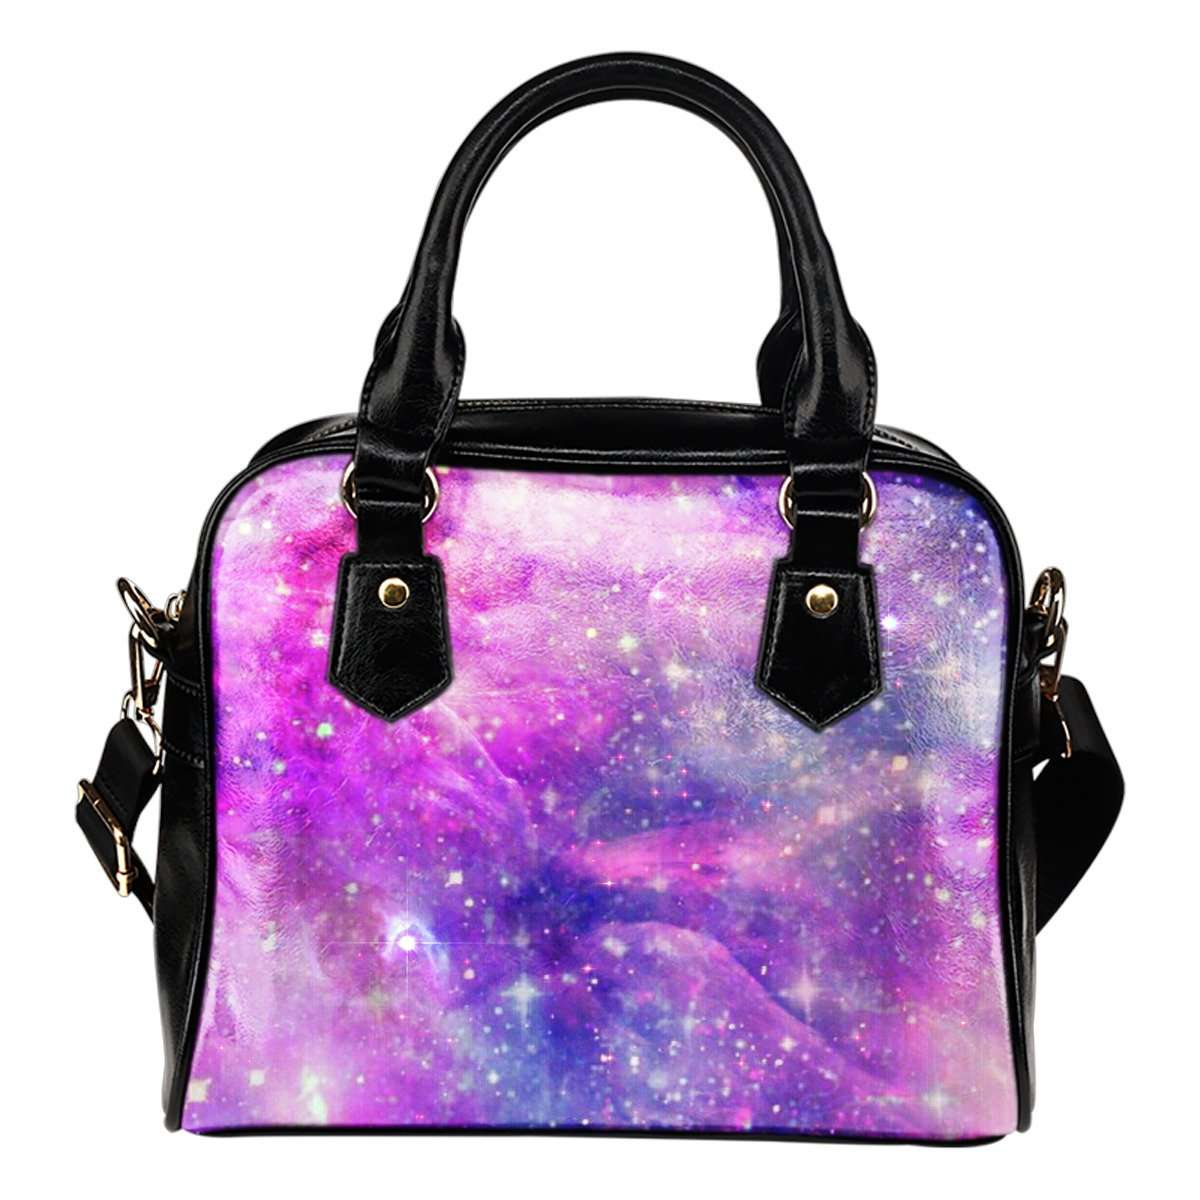 Pastel Galaxy 1 Shoulder Handbag - STUDIO 11 COUTURE